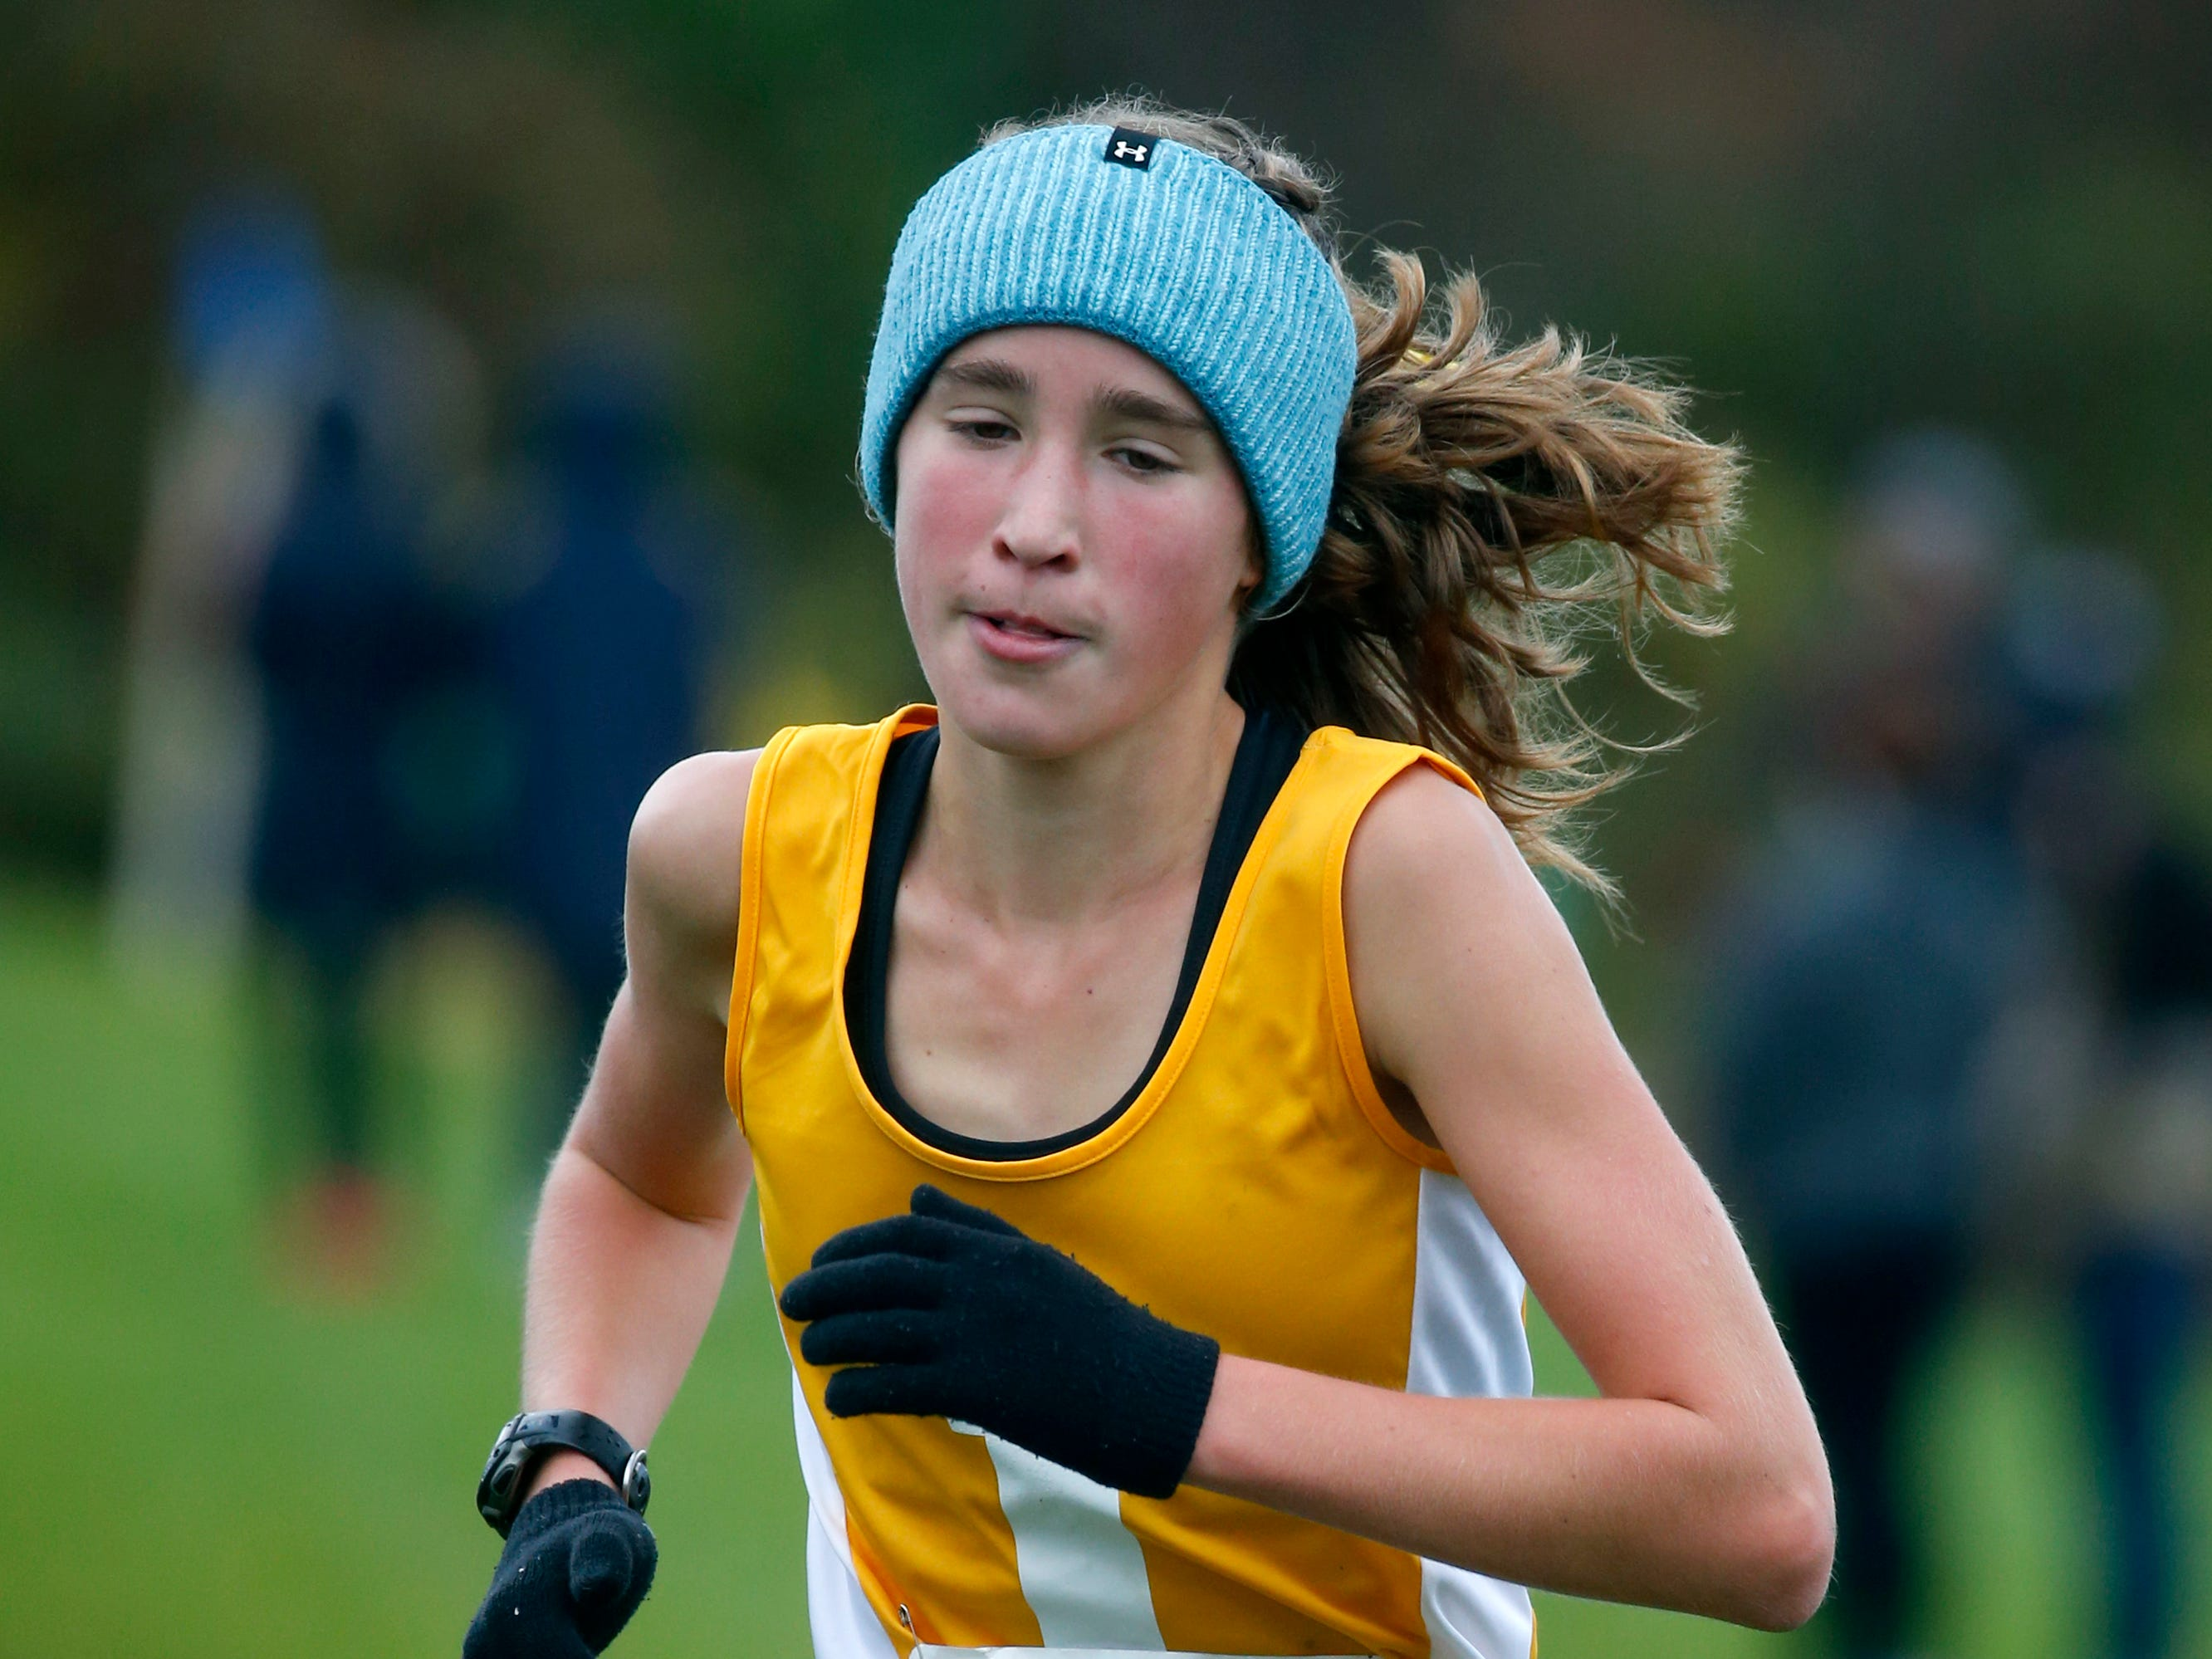 Girls Class A: Irondequoit's Candace Tytler finished second with a time of 19:32.2 during the Section V Cross Country meet at Midlakes High School.